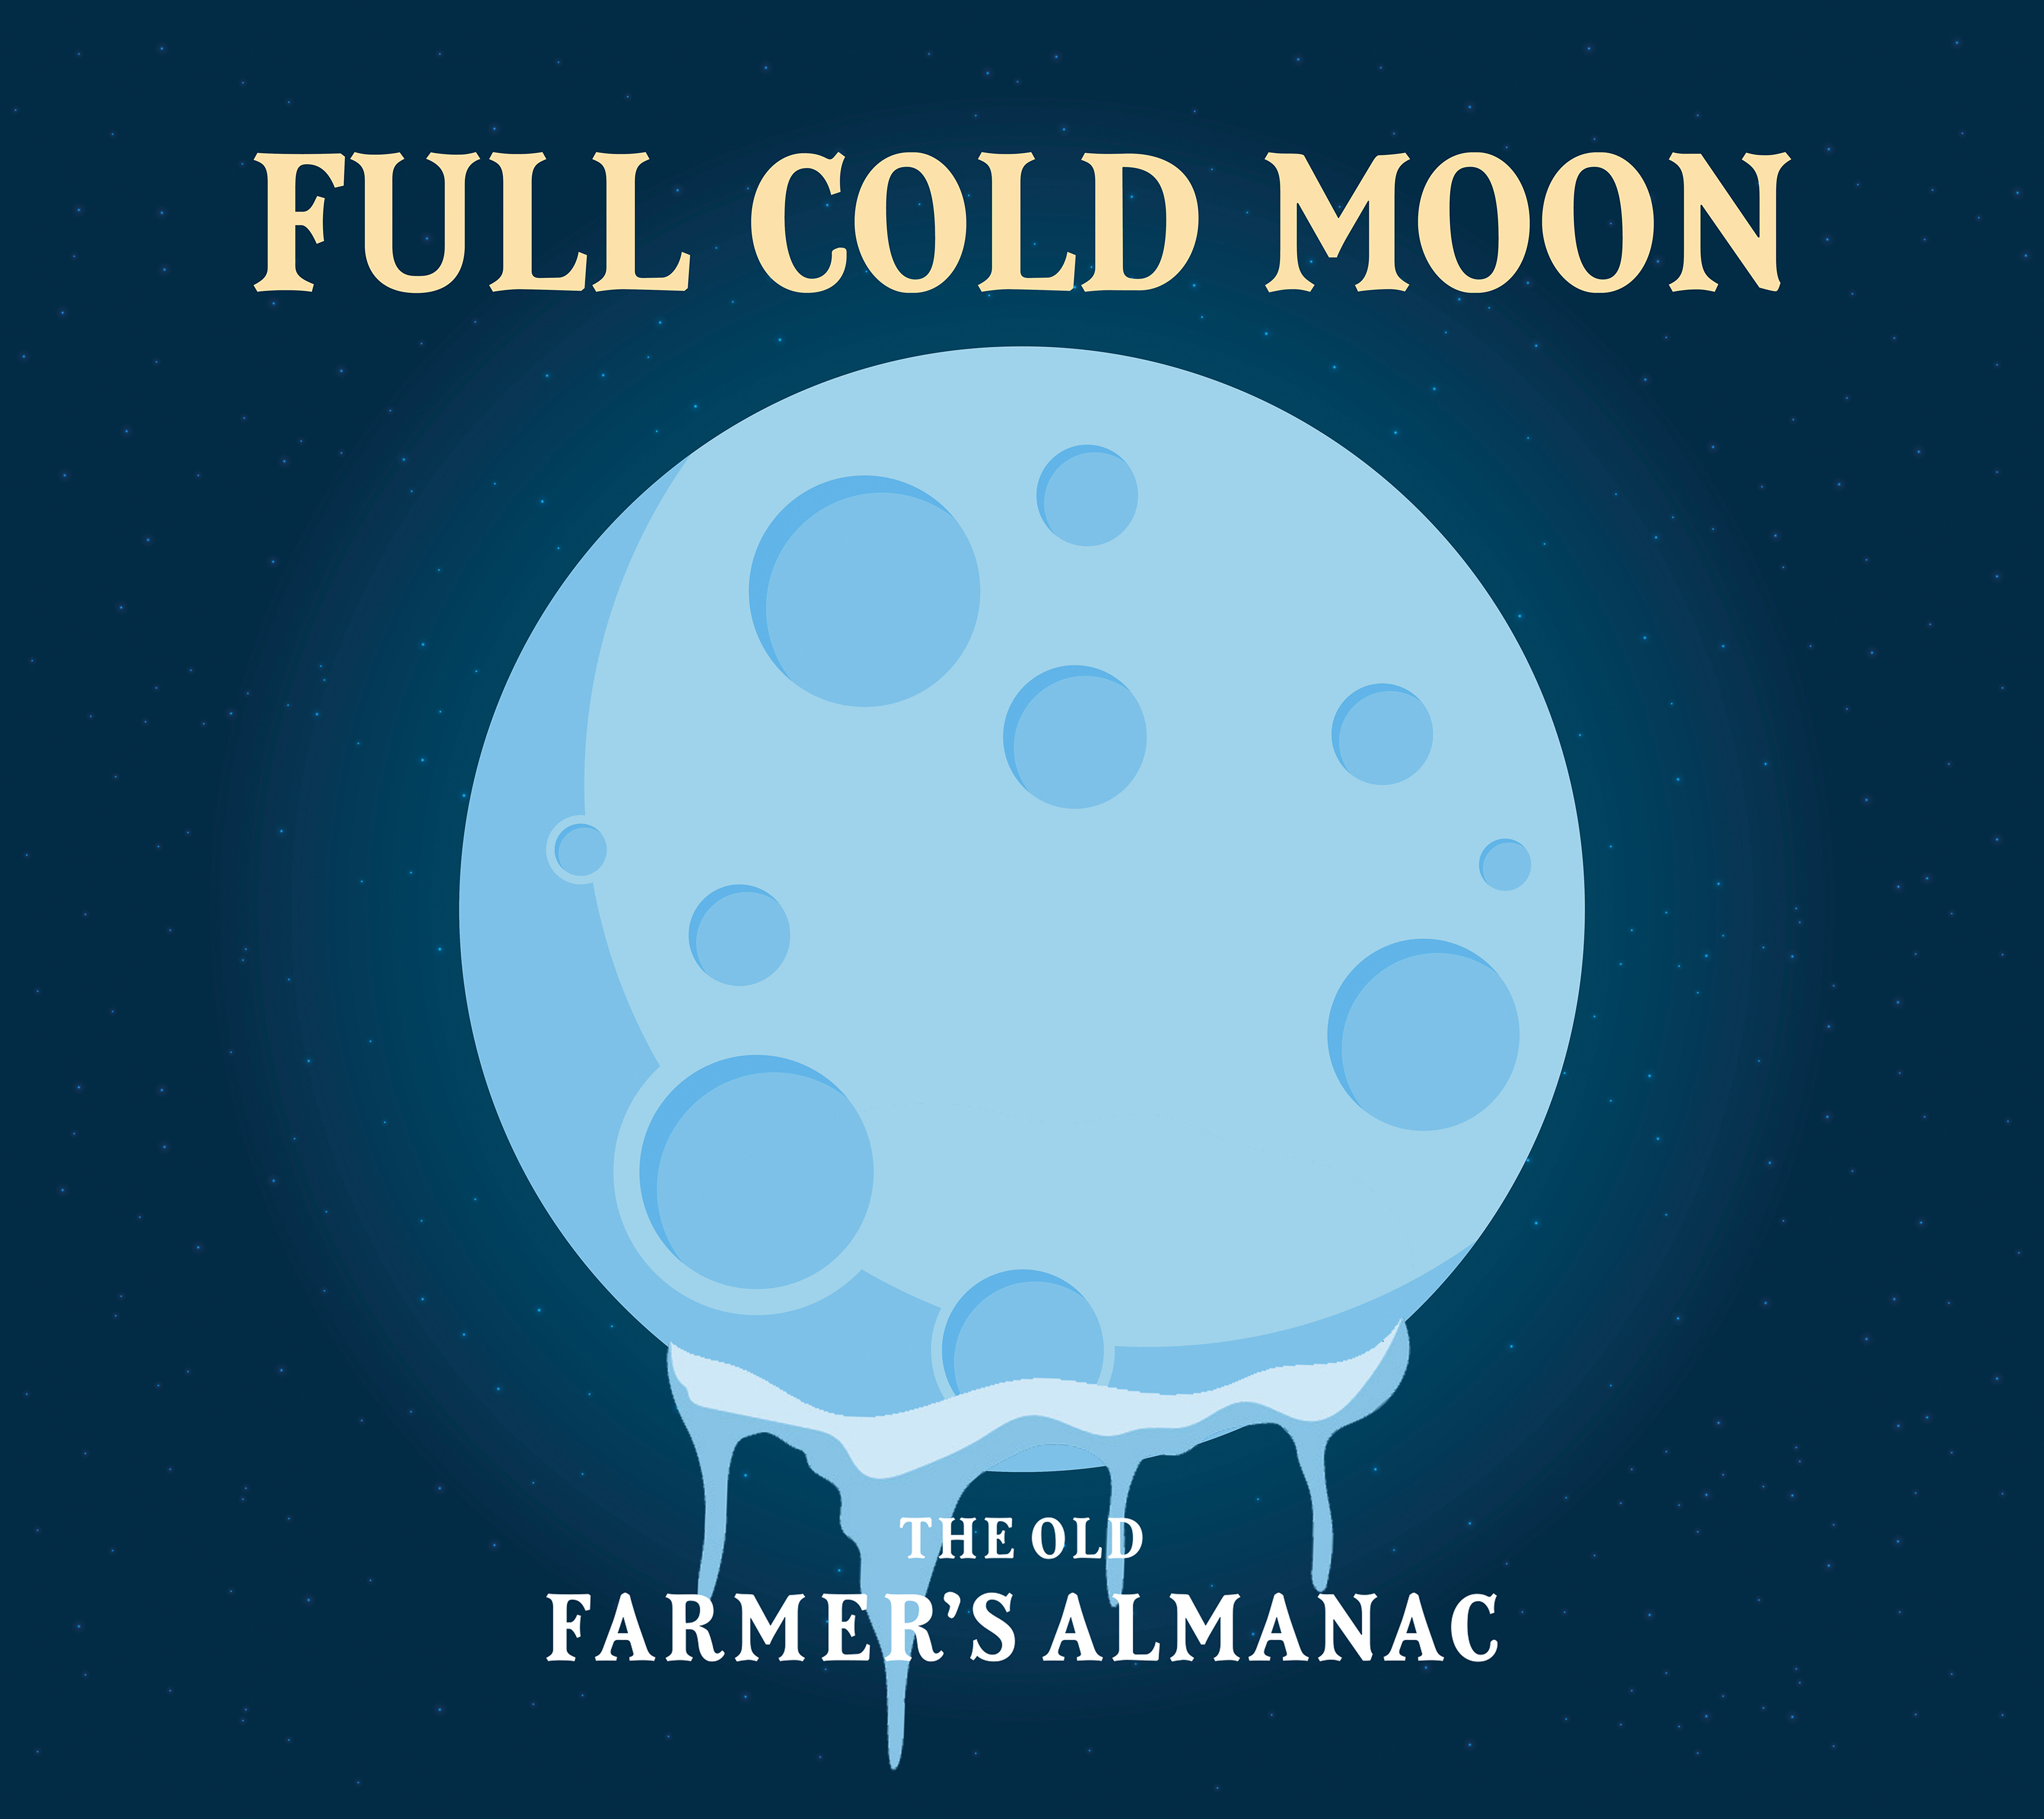 Full Moon For December 2017 The Full Cold Moon The Old Farmers